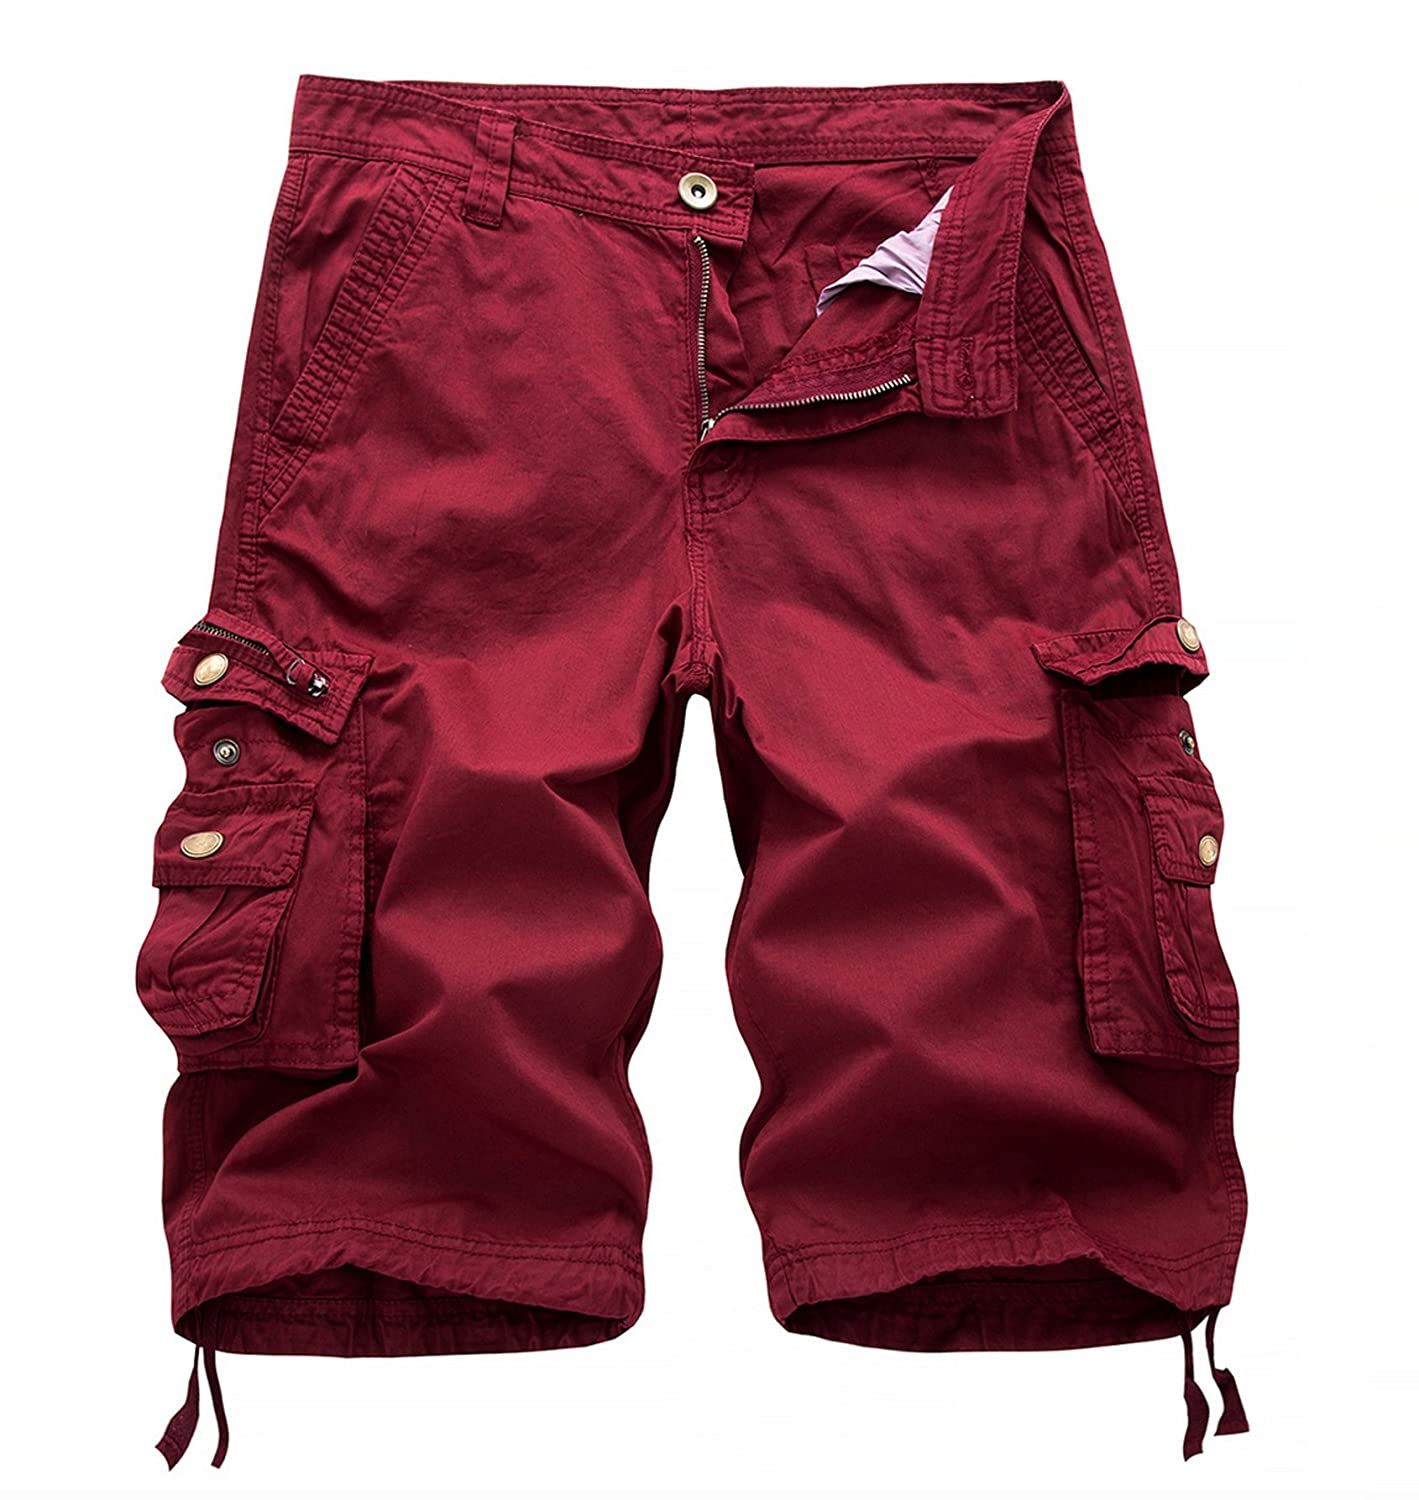 WSLCN Men's Cotton Combat Canvas Chino Cargo Shorts Divers Colors DK0351